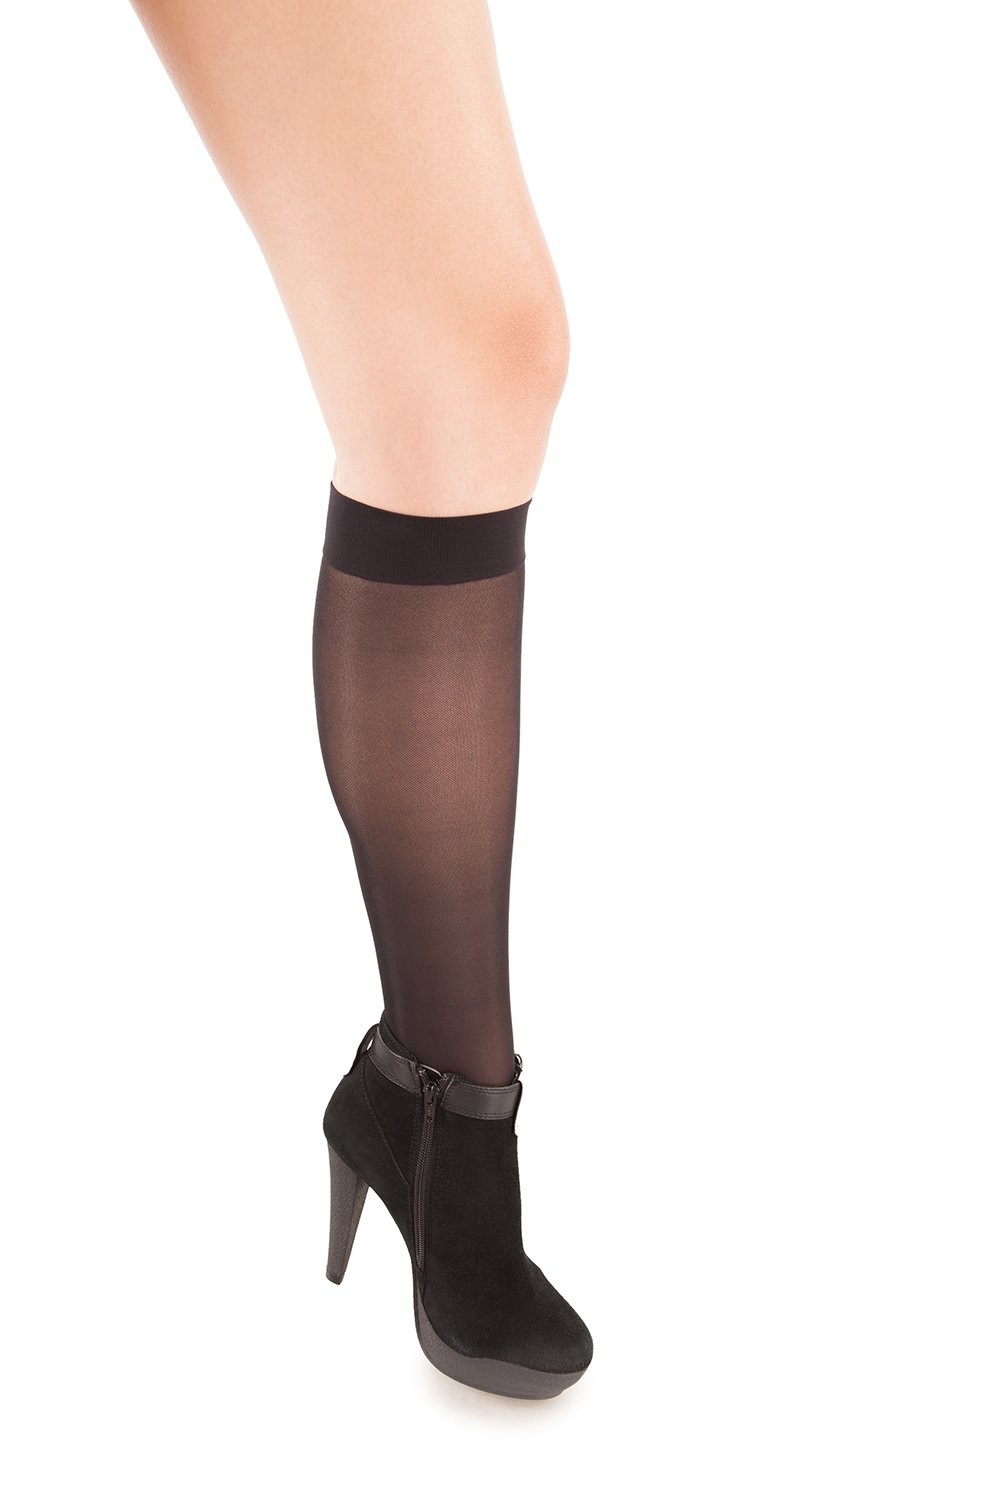 Sheer Knee Highs - Firm Compression - 23 to 30 mmHG - Gabrialla